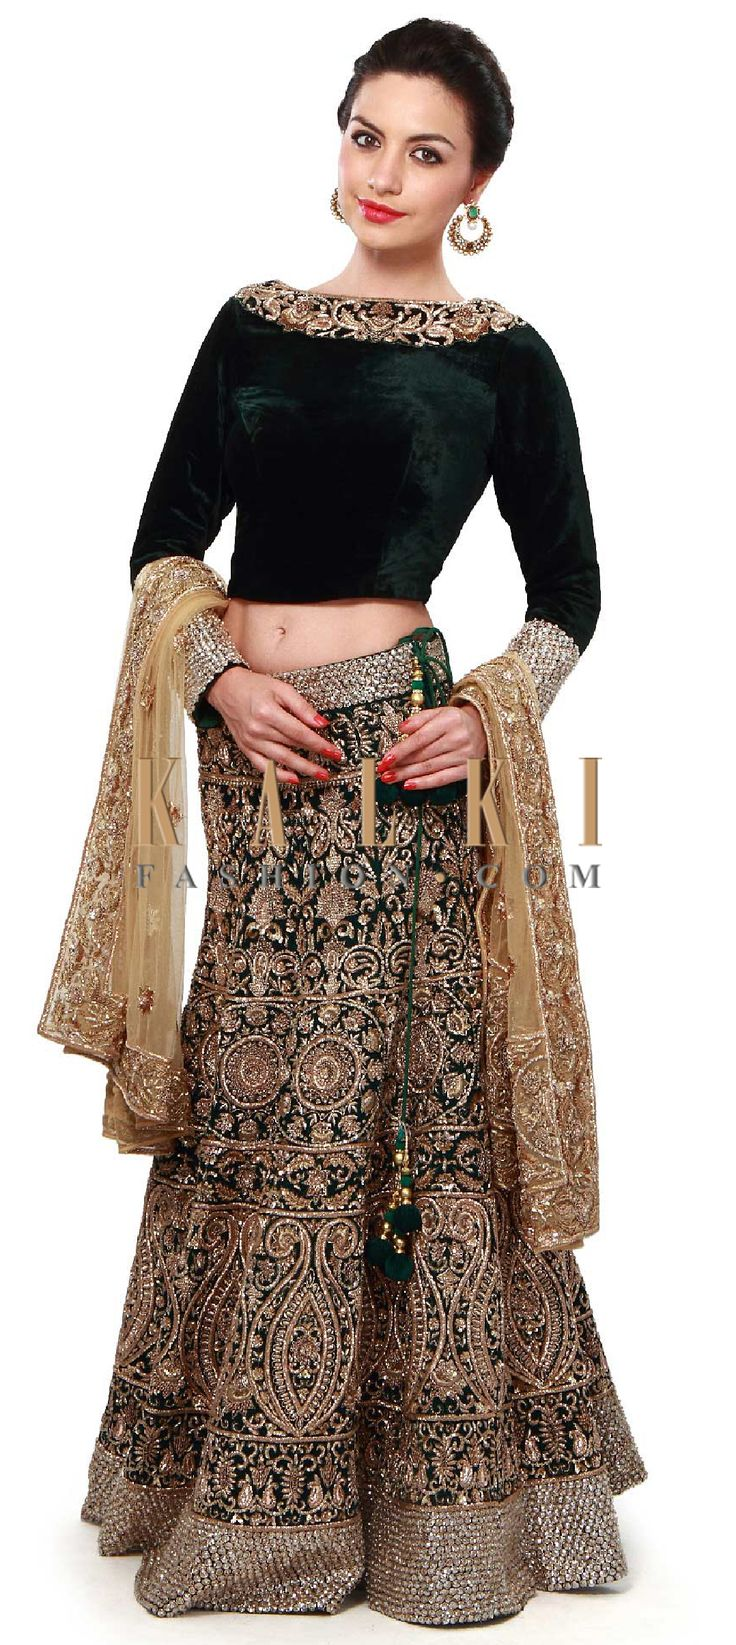 Buy Online from the link below. We ship worldwide (Free Shipping over US$100). Product SKU - 259035. Product Price - $2,289.00. Product link - http://www.kalkifashion.com/dark-green-lehenga-adorn-in-stone-and-zardosi-embroidery-only-on-kalki.html